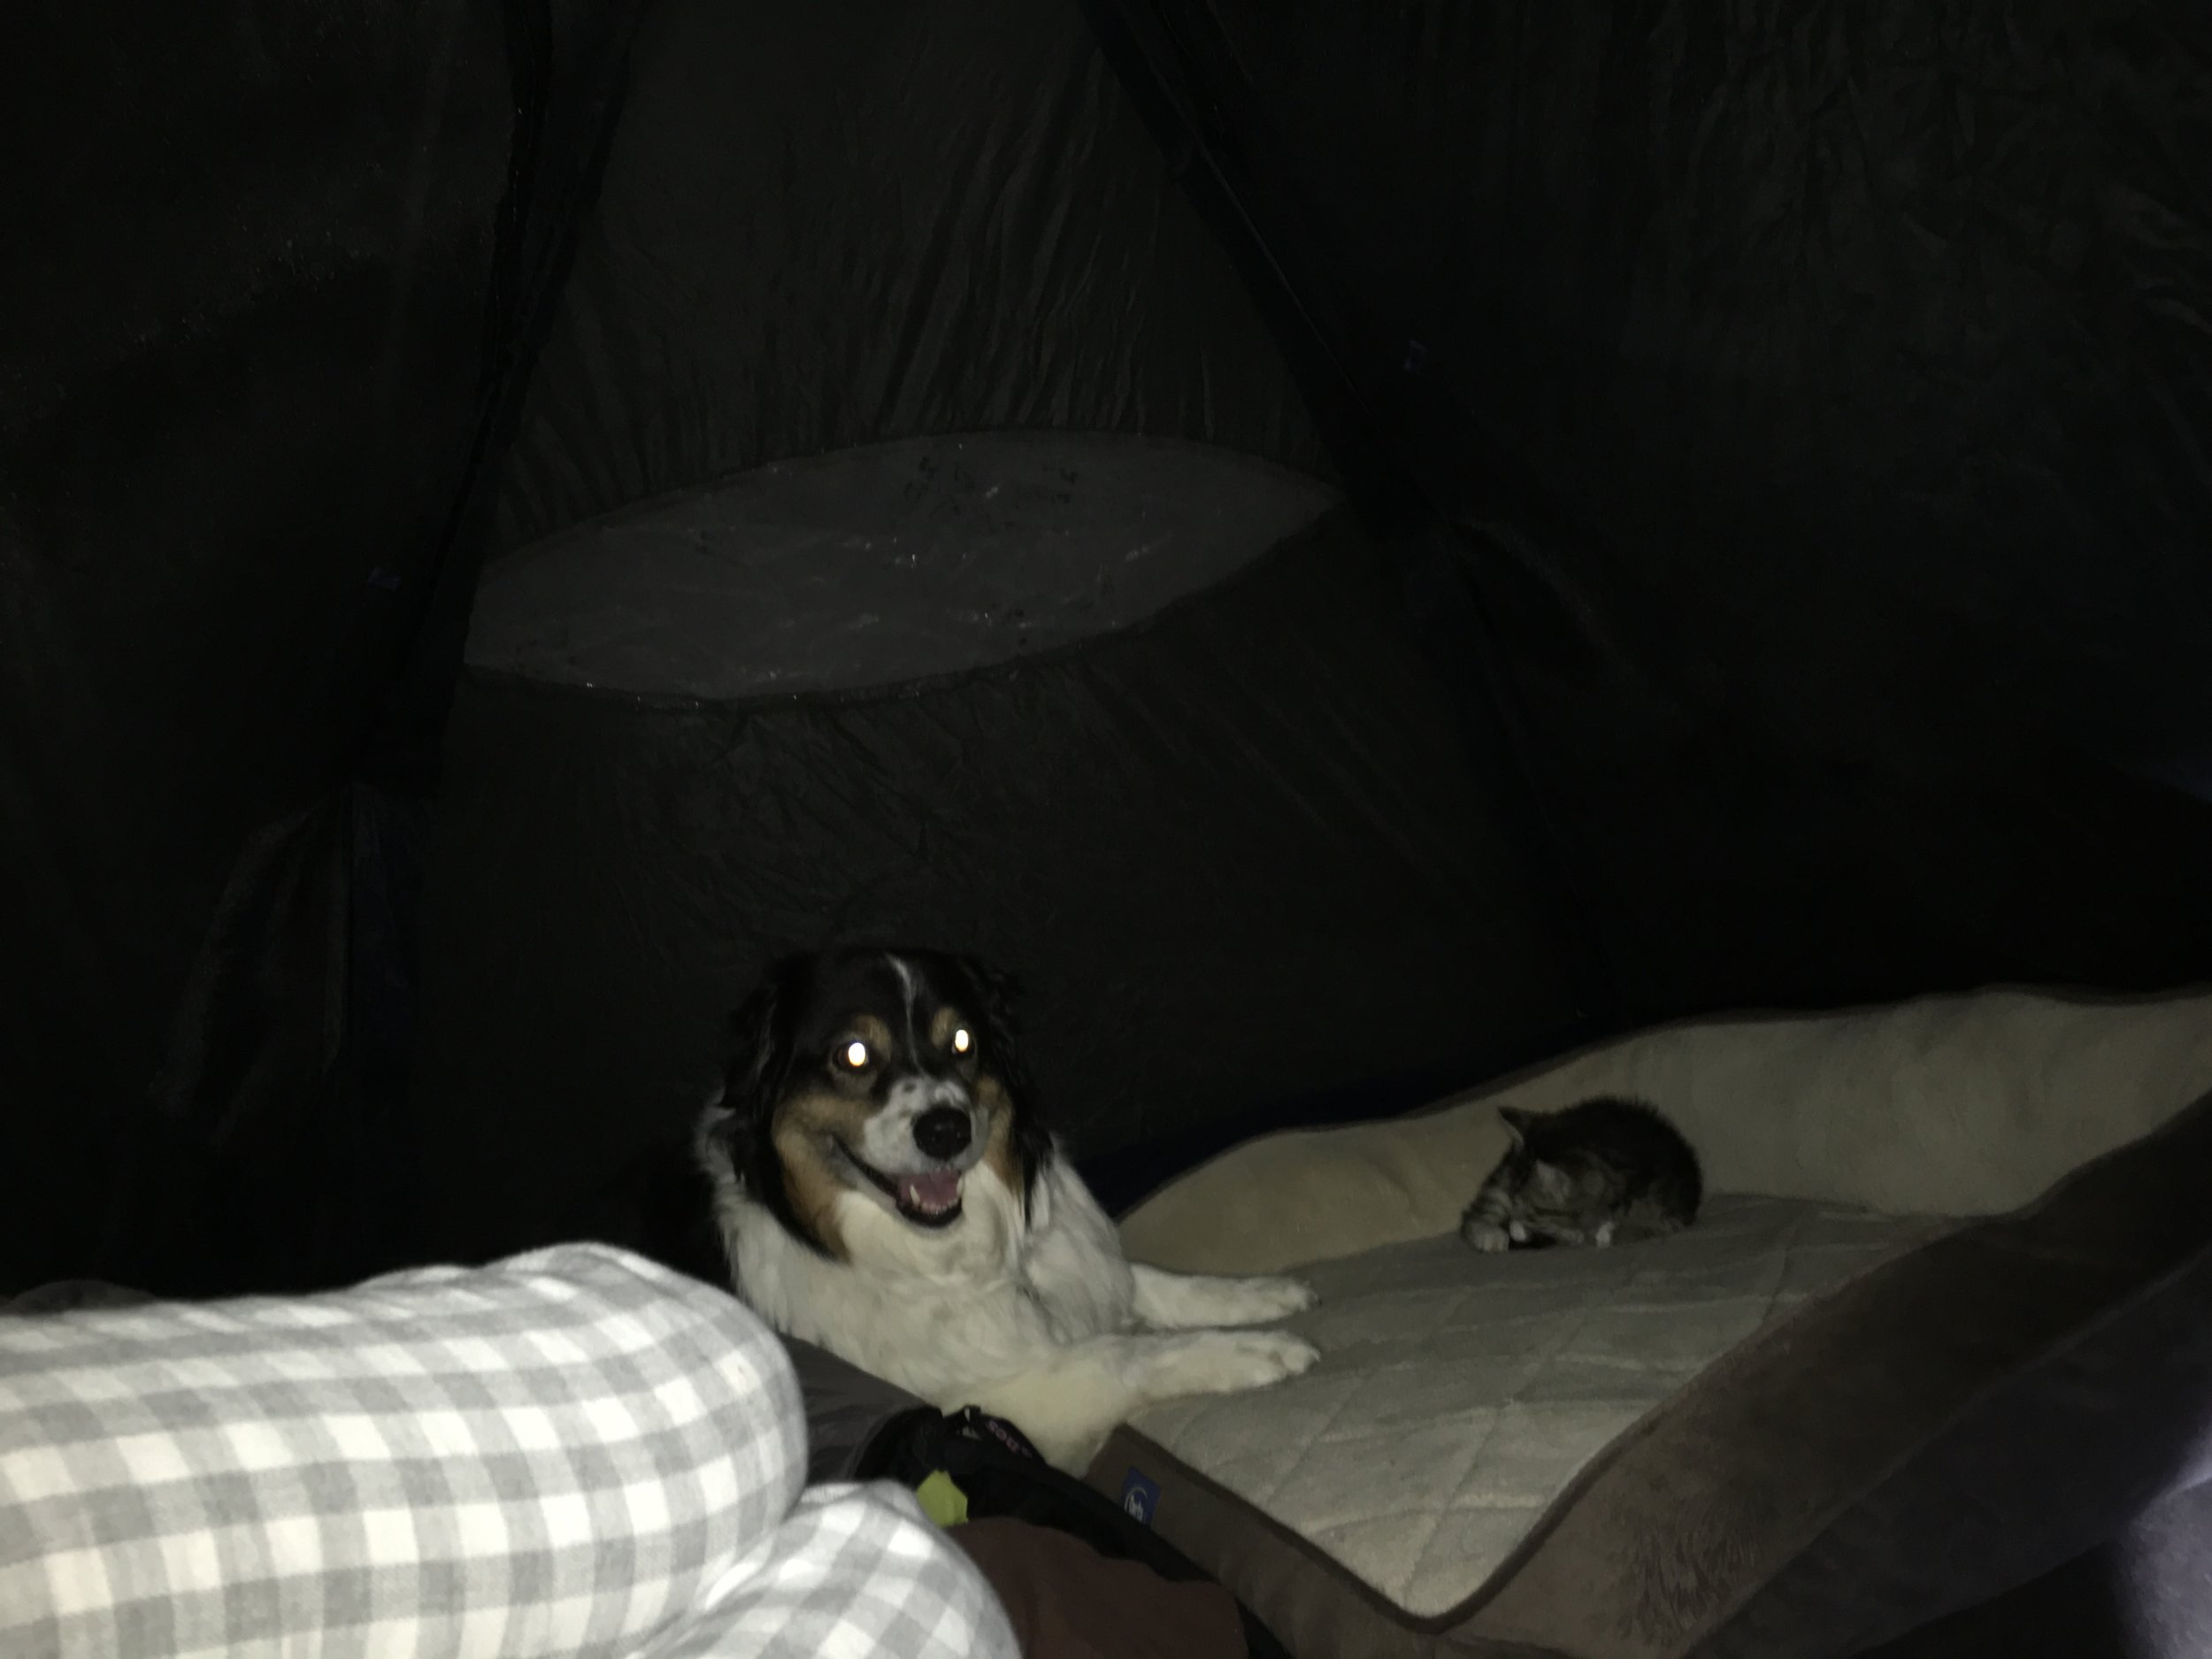 In the tent. Fiona loves cats but was a bit nervous to share a bed with one.